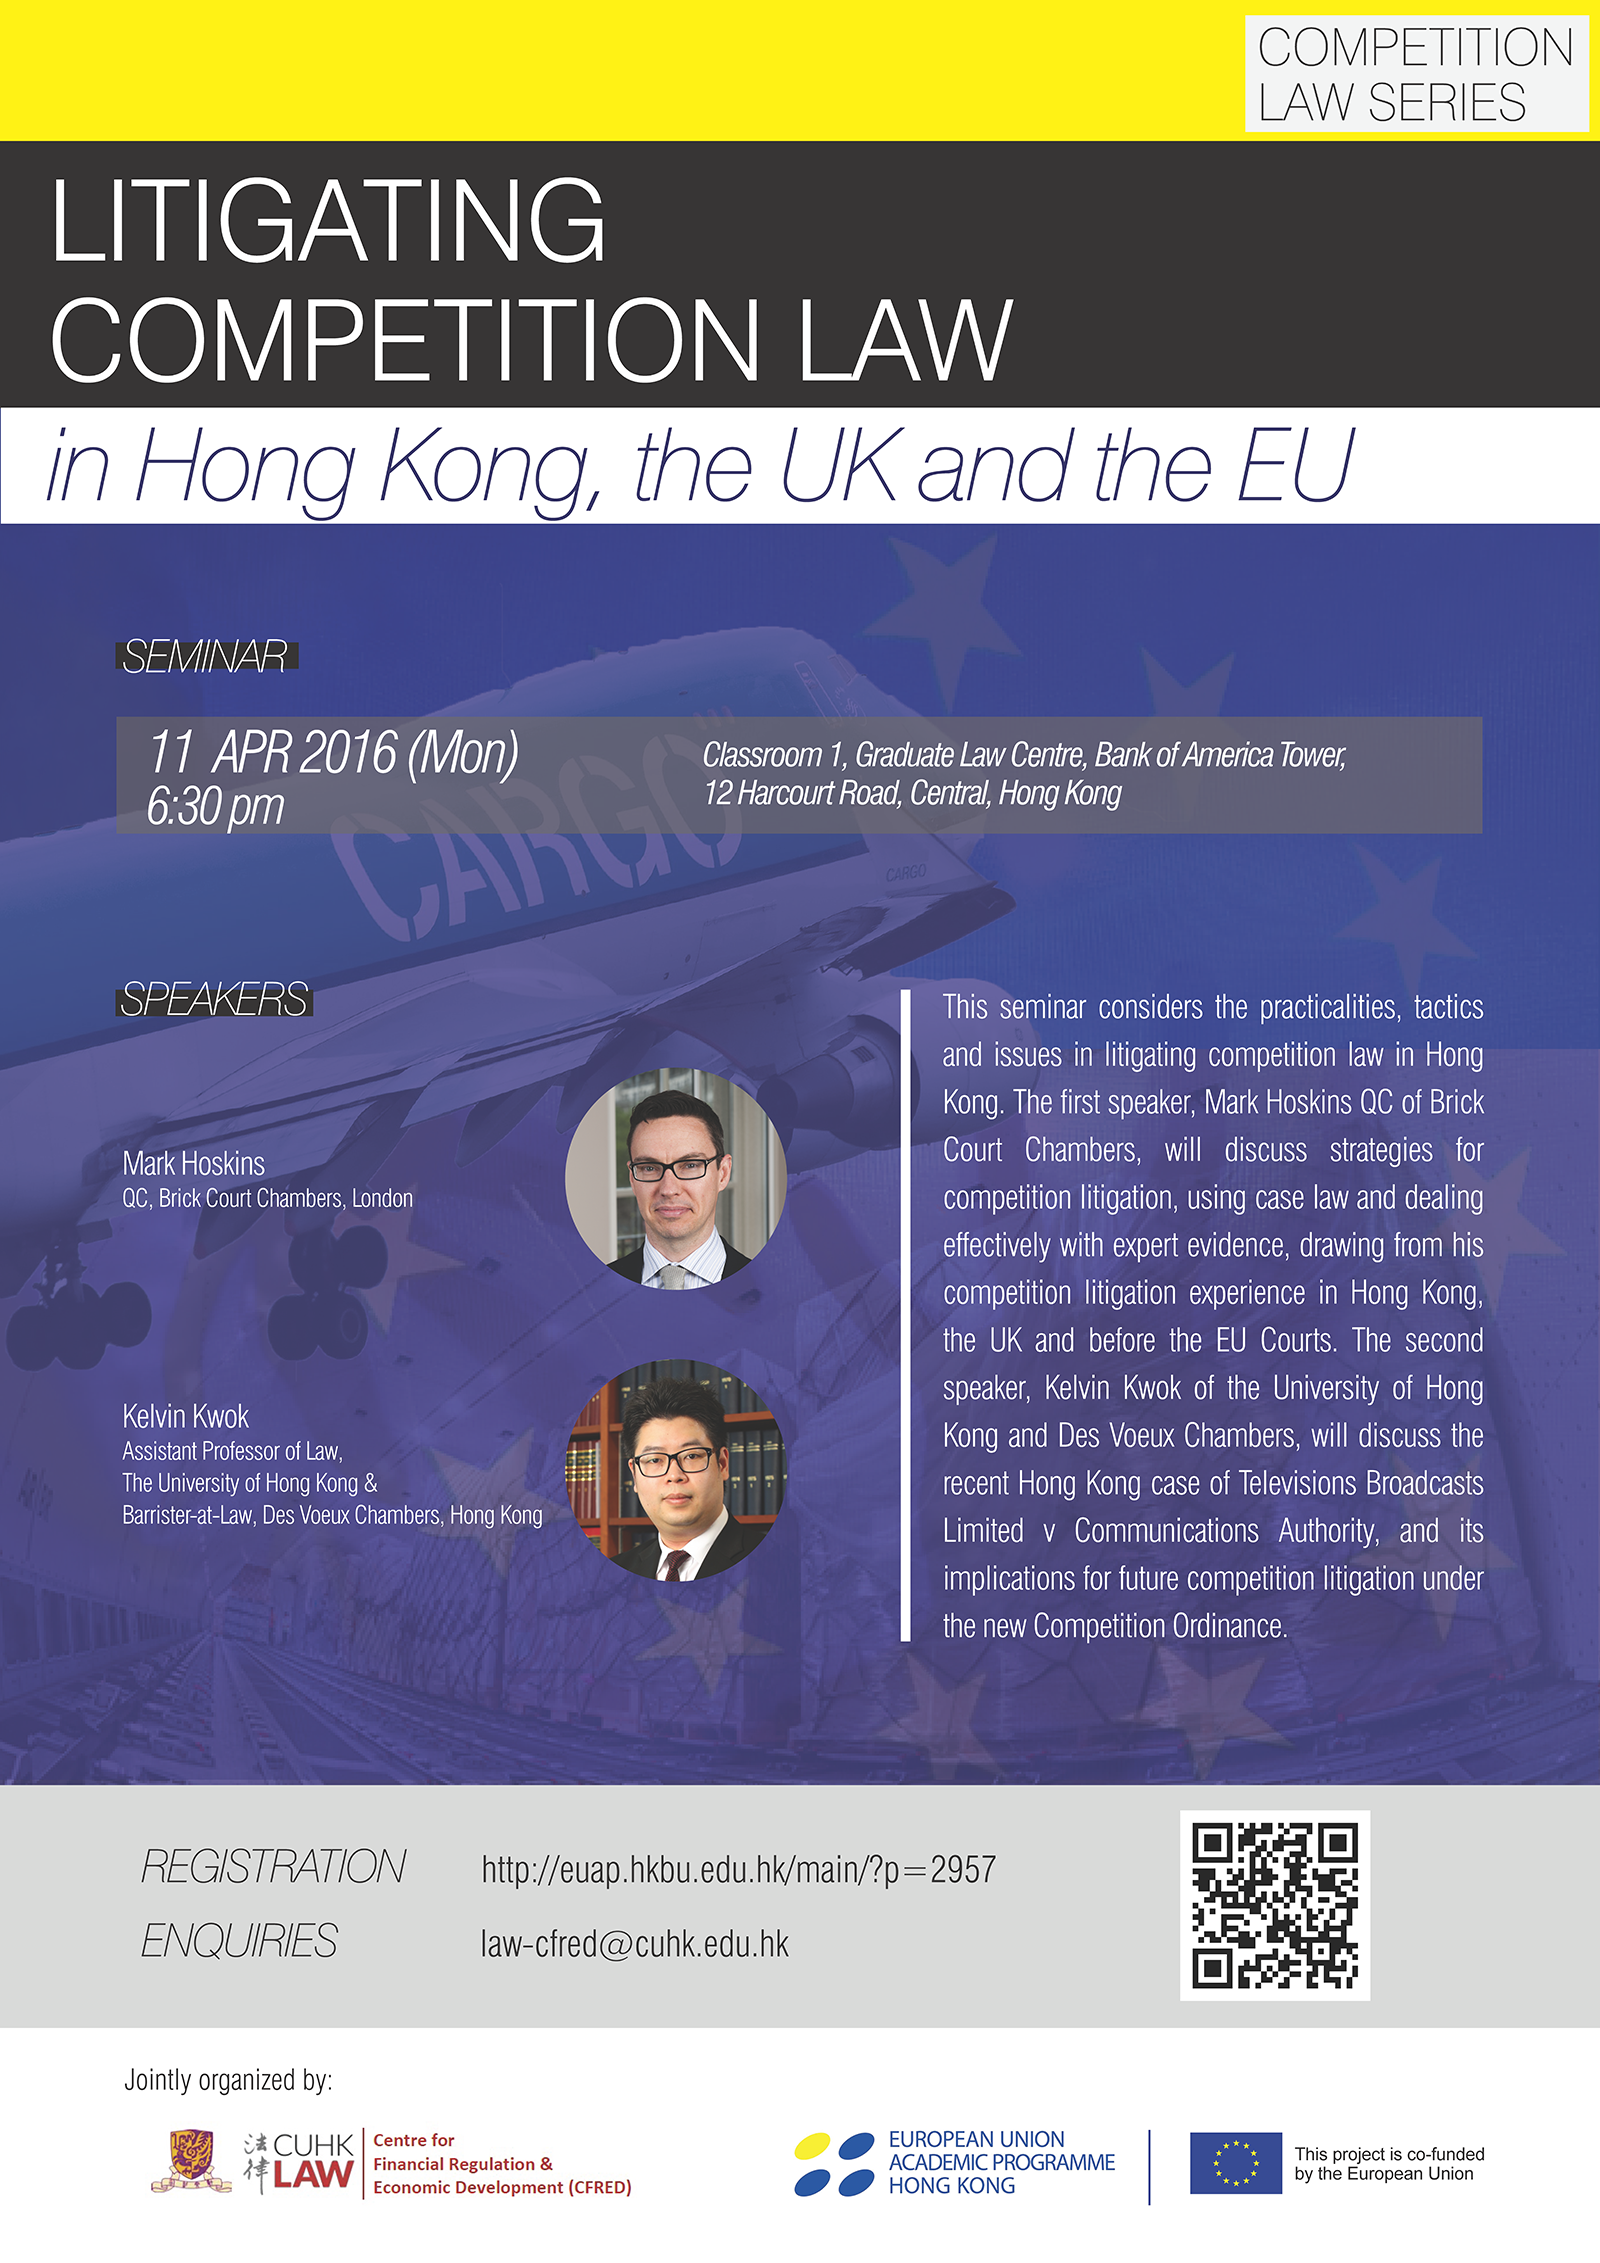 Competition Law Series: Litigating Competition Law in Hong Kong, the UK and the EU